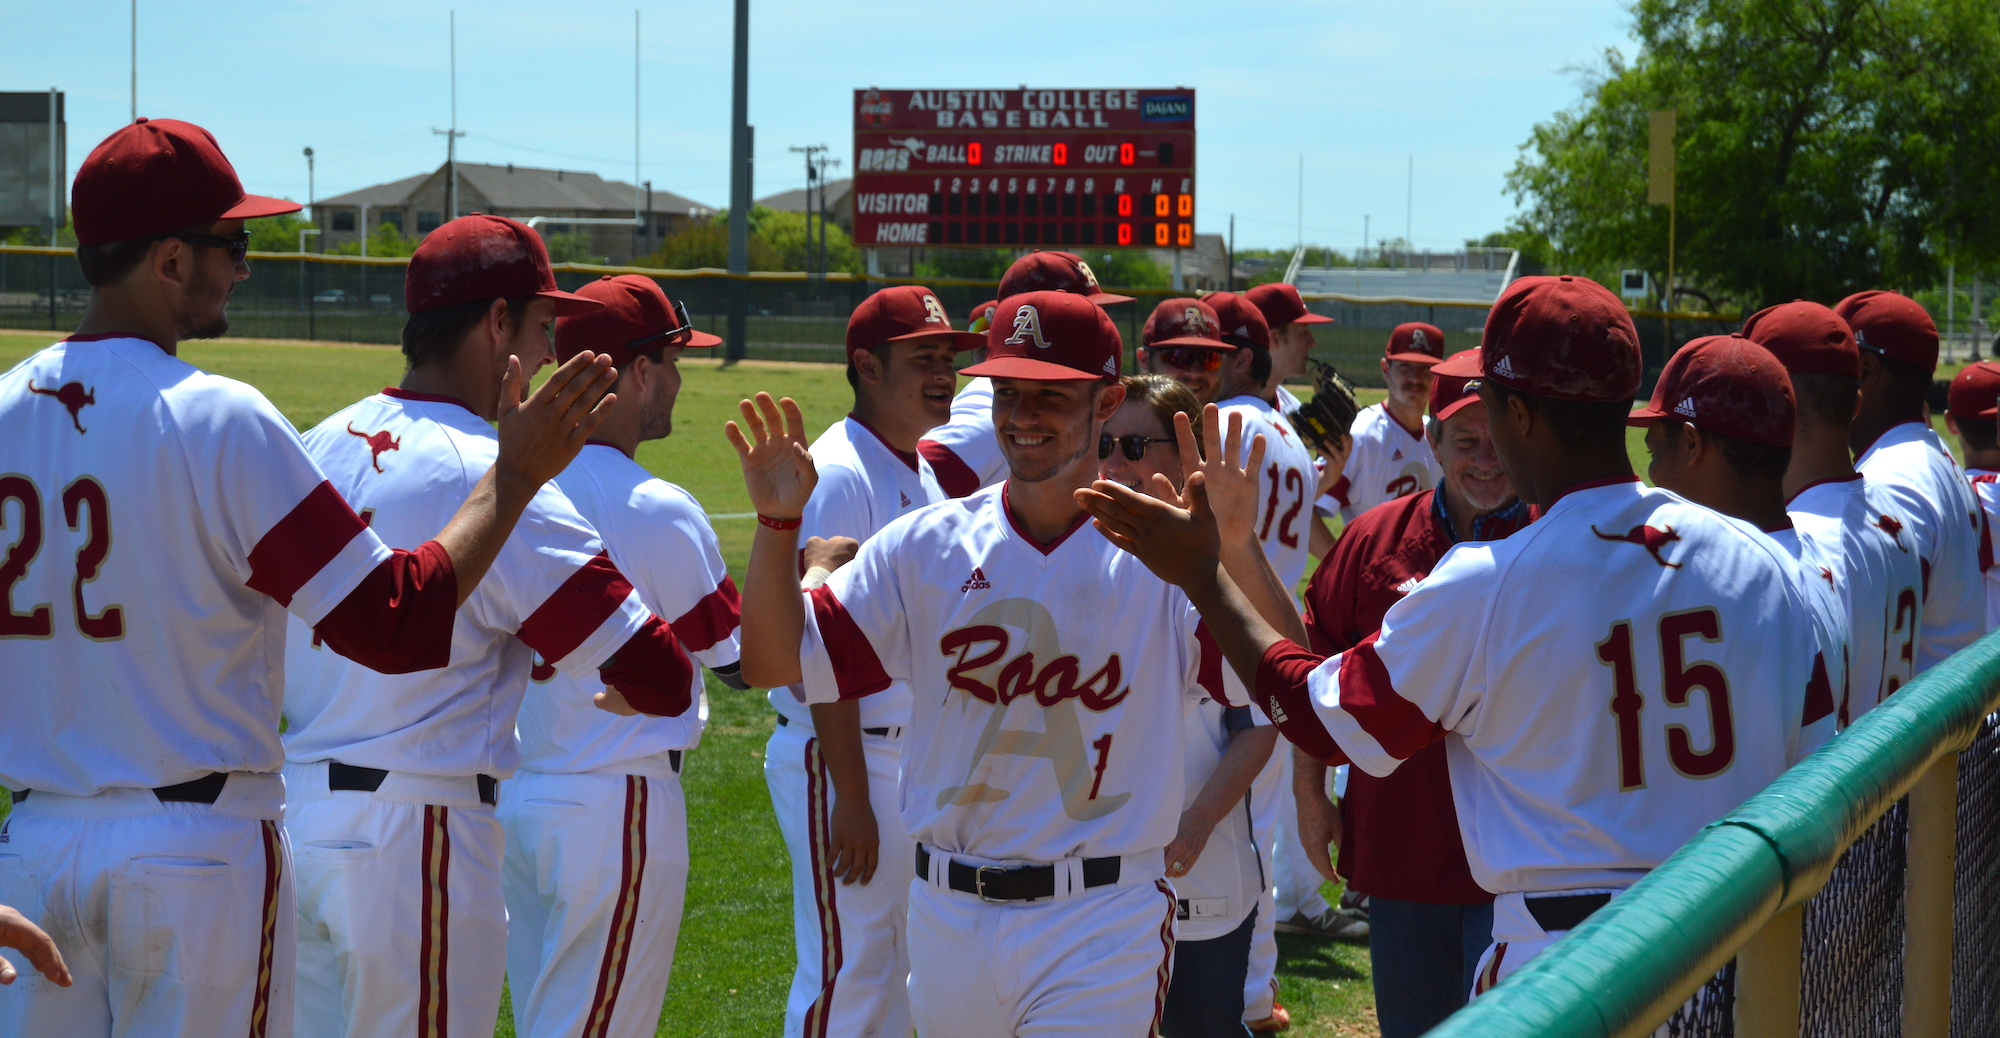 'Roos Drop Two to No. 14 TLU on Senior Day